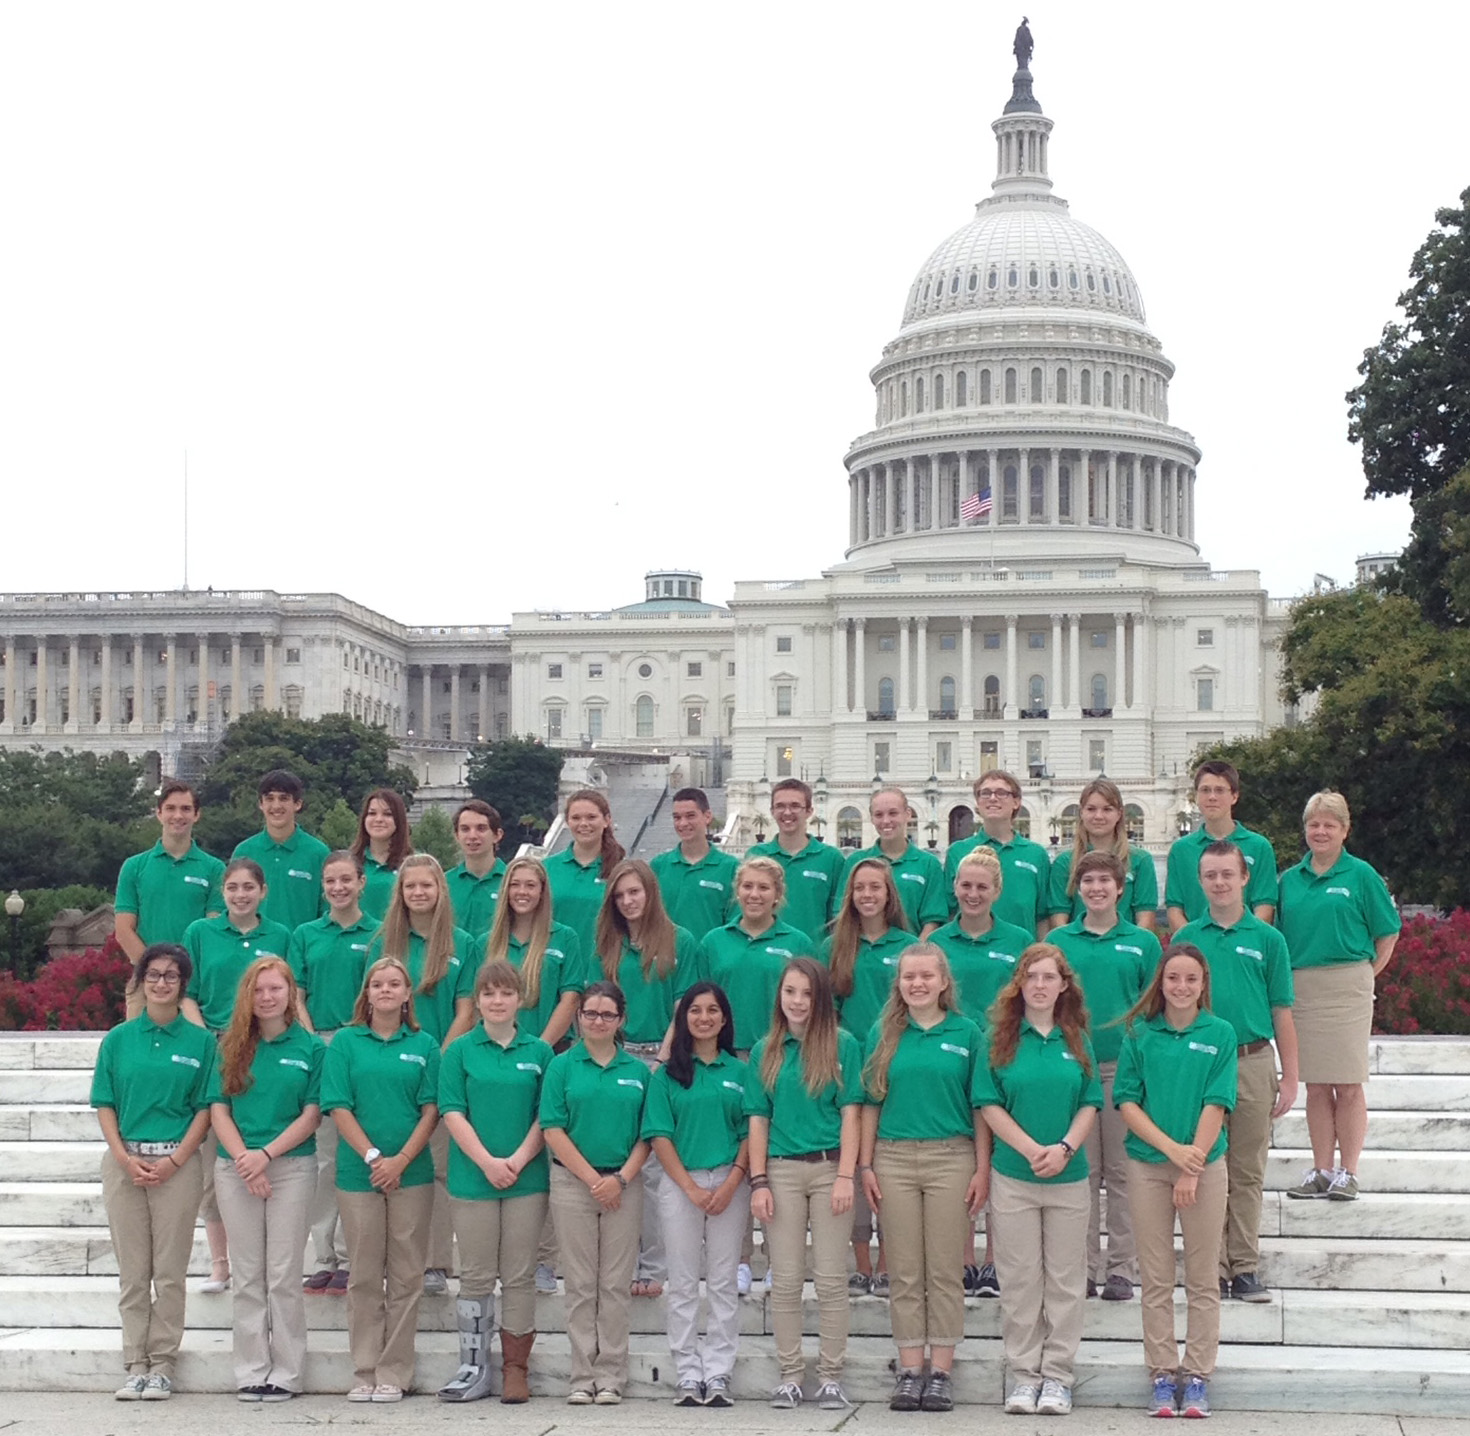 New Jersey 4-H delegates to the 2014 Citizenship Washington Focus on the steps of the Capitol.